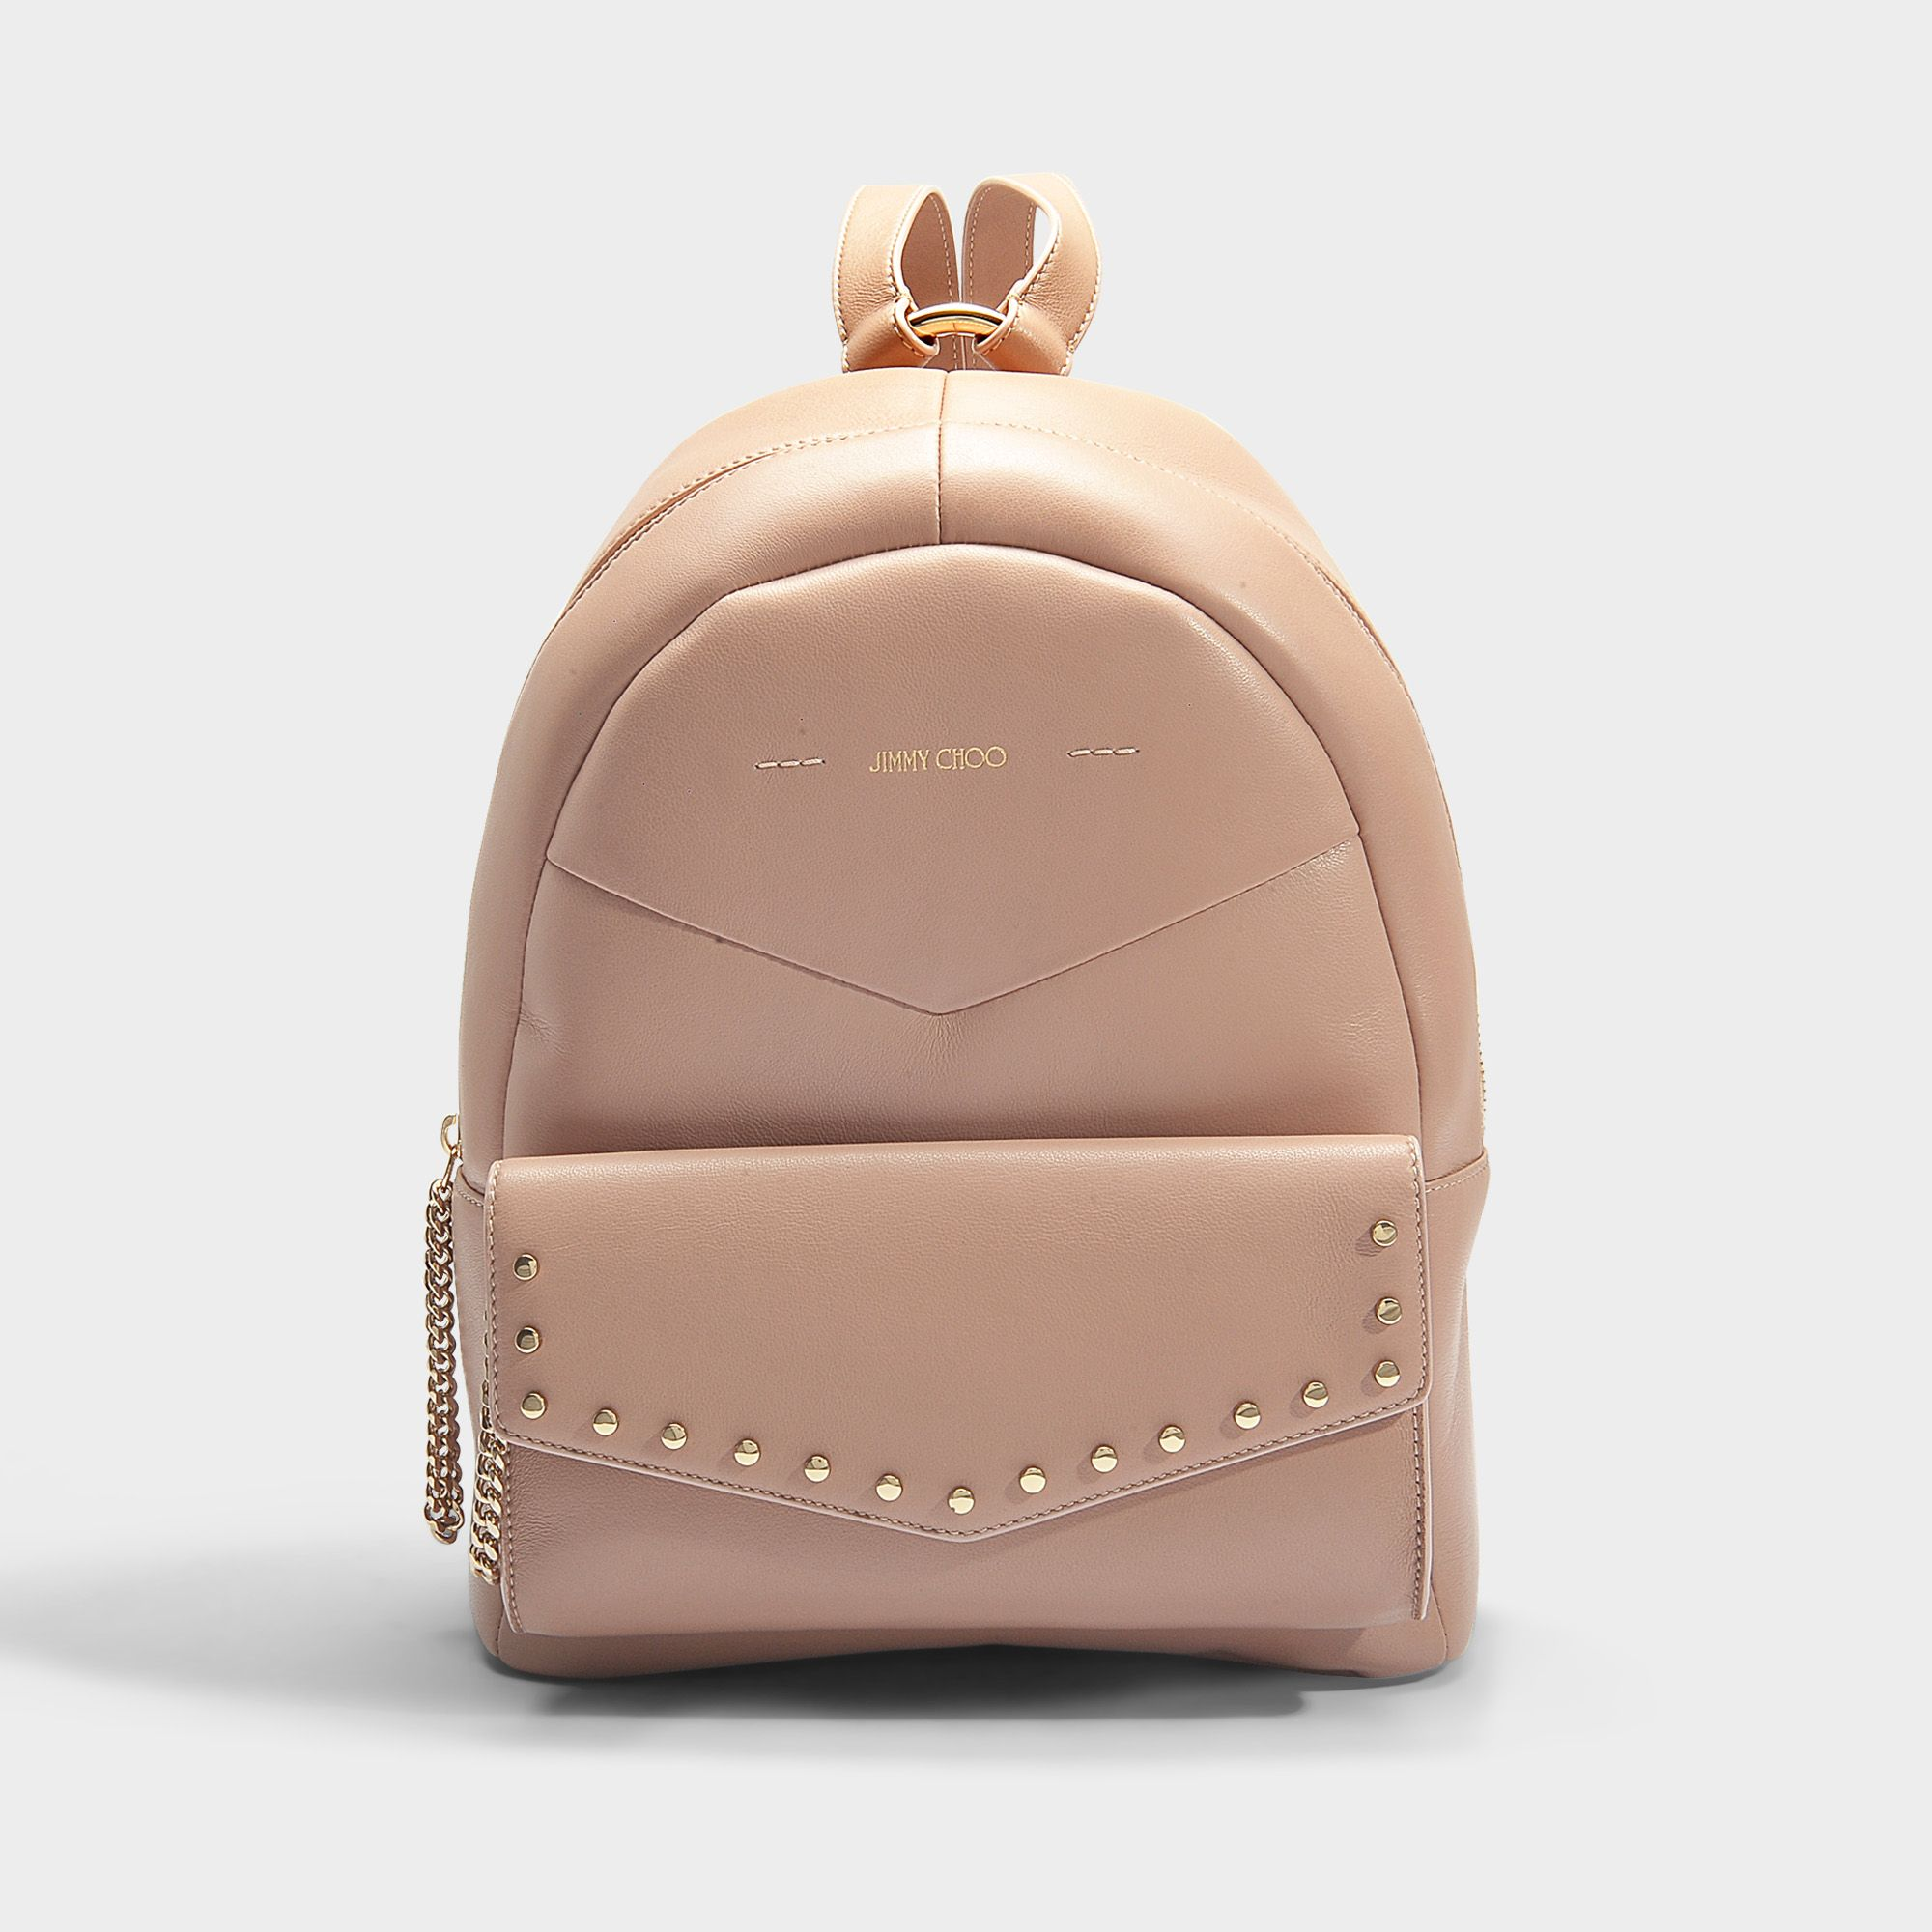 hot-selling authentic 2019 original authentic quality JIMMY CHOO Cassie Backpack in Black Calfskin. #jimmychoo ...